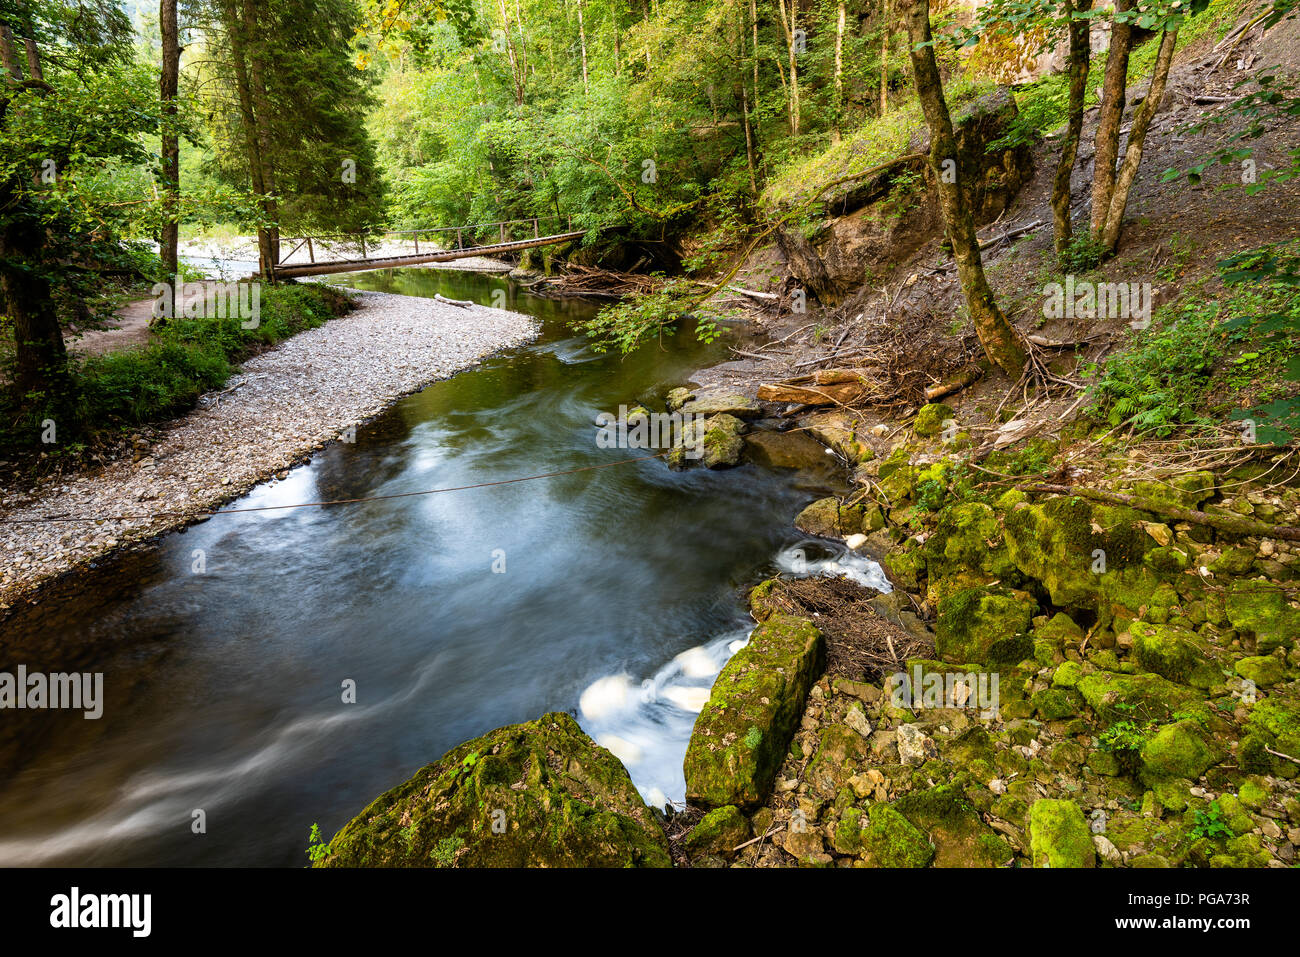 The Wutach Gorge (German: Wutachschlucht) is a narrow, steep-sided valley in southern Germany through in the upper reaches of the River Wutach with th - Stock Image